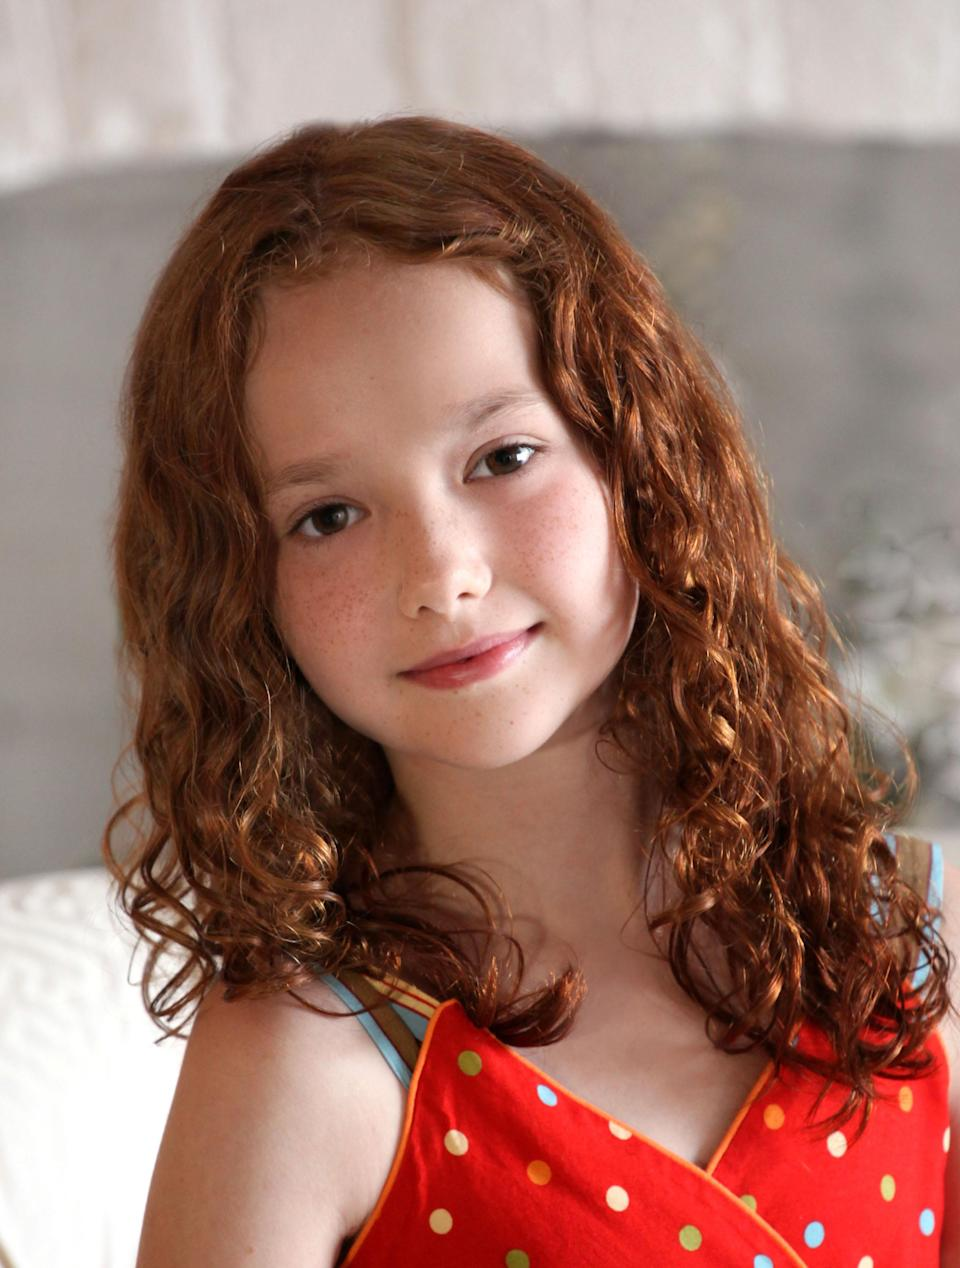 """In this undated publicity image, actress Taylor Richardson poses for a photo. Richardson and fellow actress Sadie Sink will share the title role in """"Annie,"""" the stage's most famous redhead beginning July 30. They replace Lilla Crawford, whose last performance will be on July 28. (AP Photo/Boneau/Bryan-Brown)"""